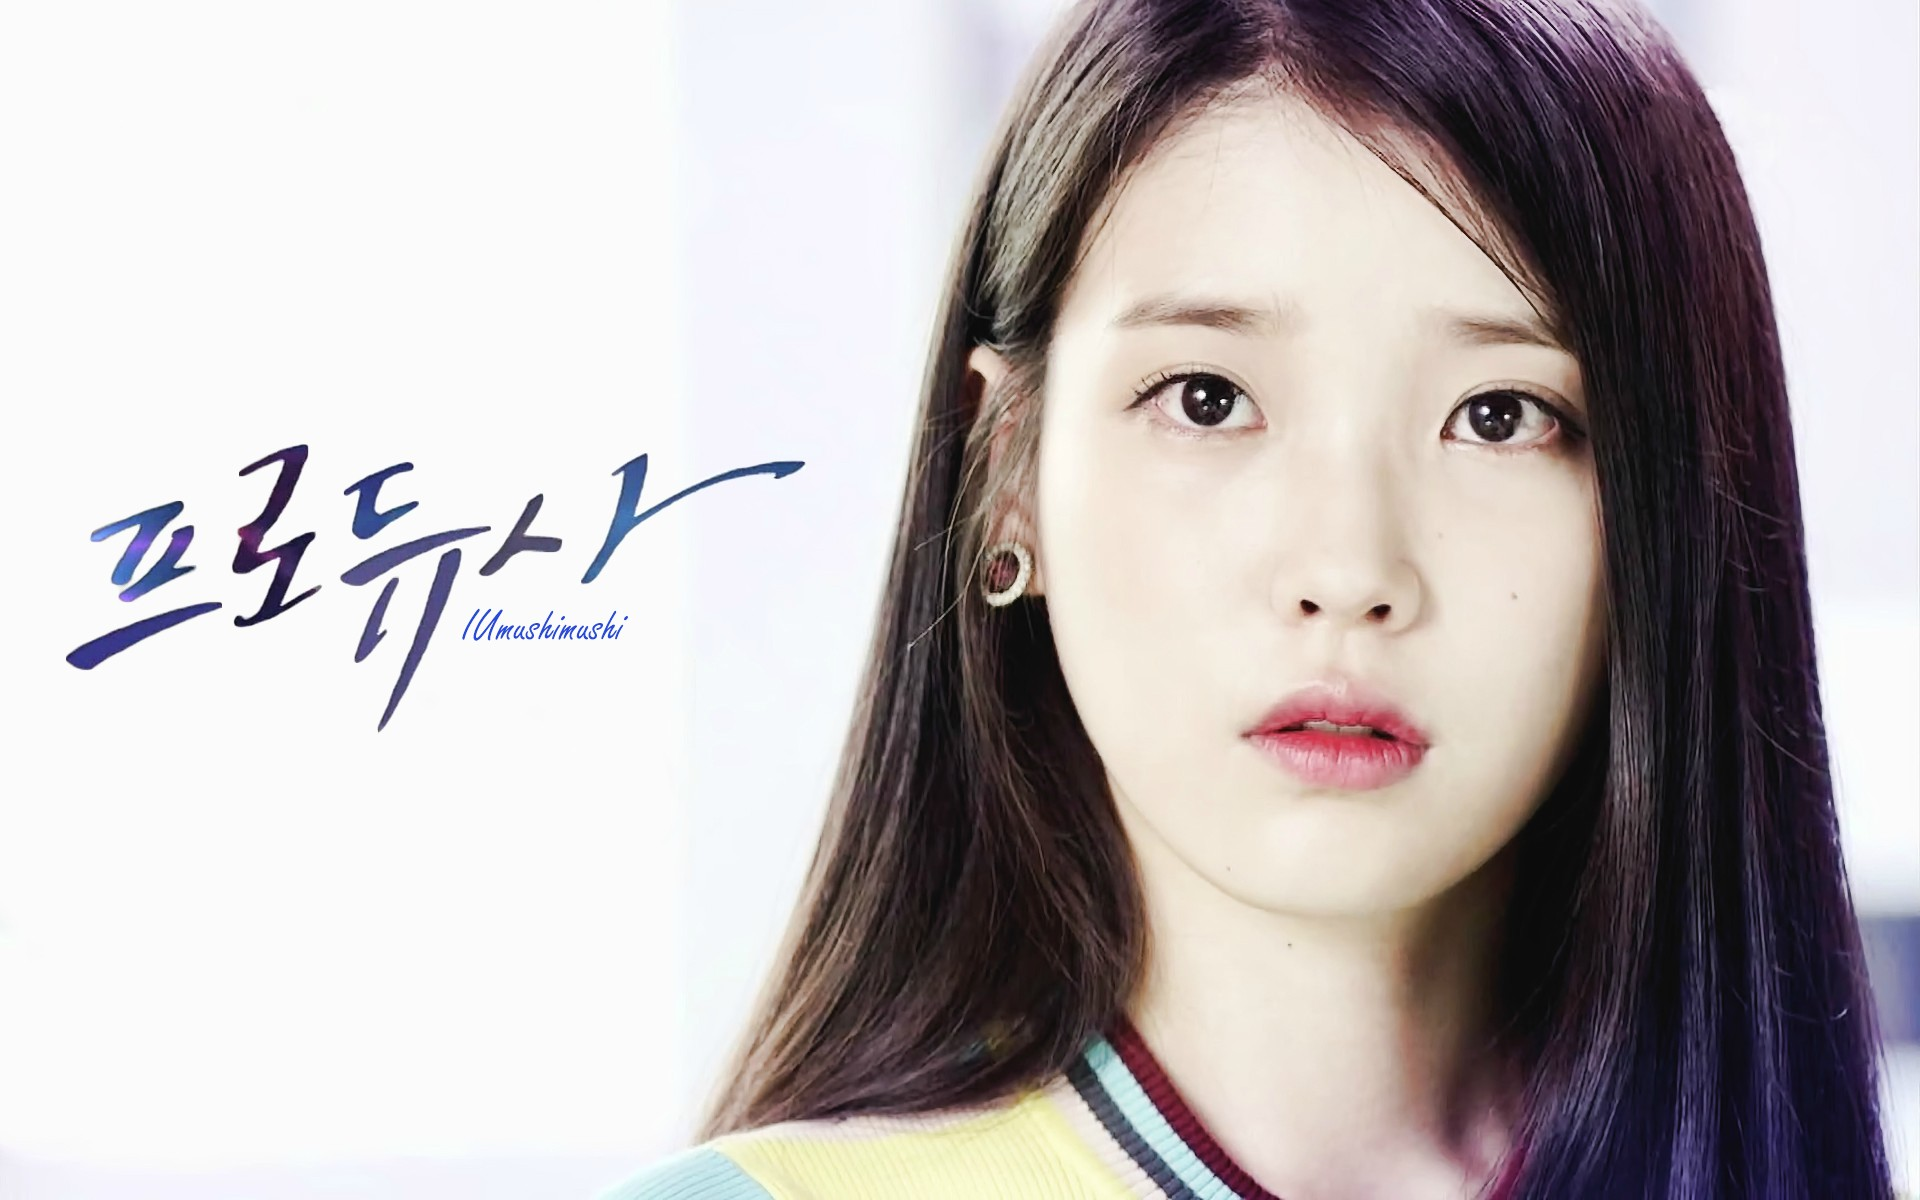 Wallpaper Download Alone Girl Producer Cindy Iu Wallpaper 1920x1200 Iu Wallpaper